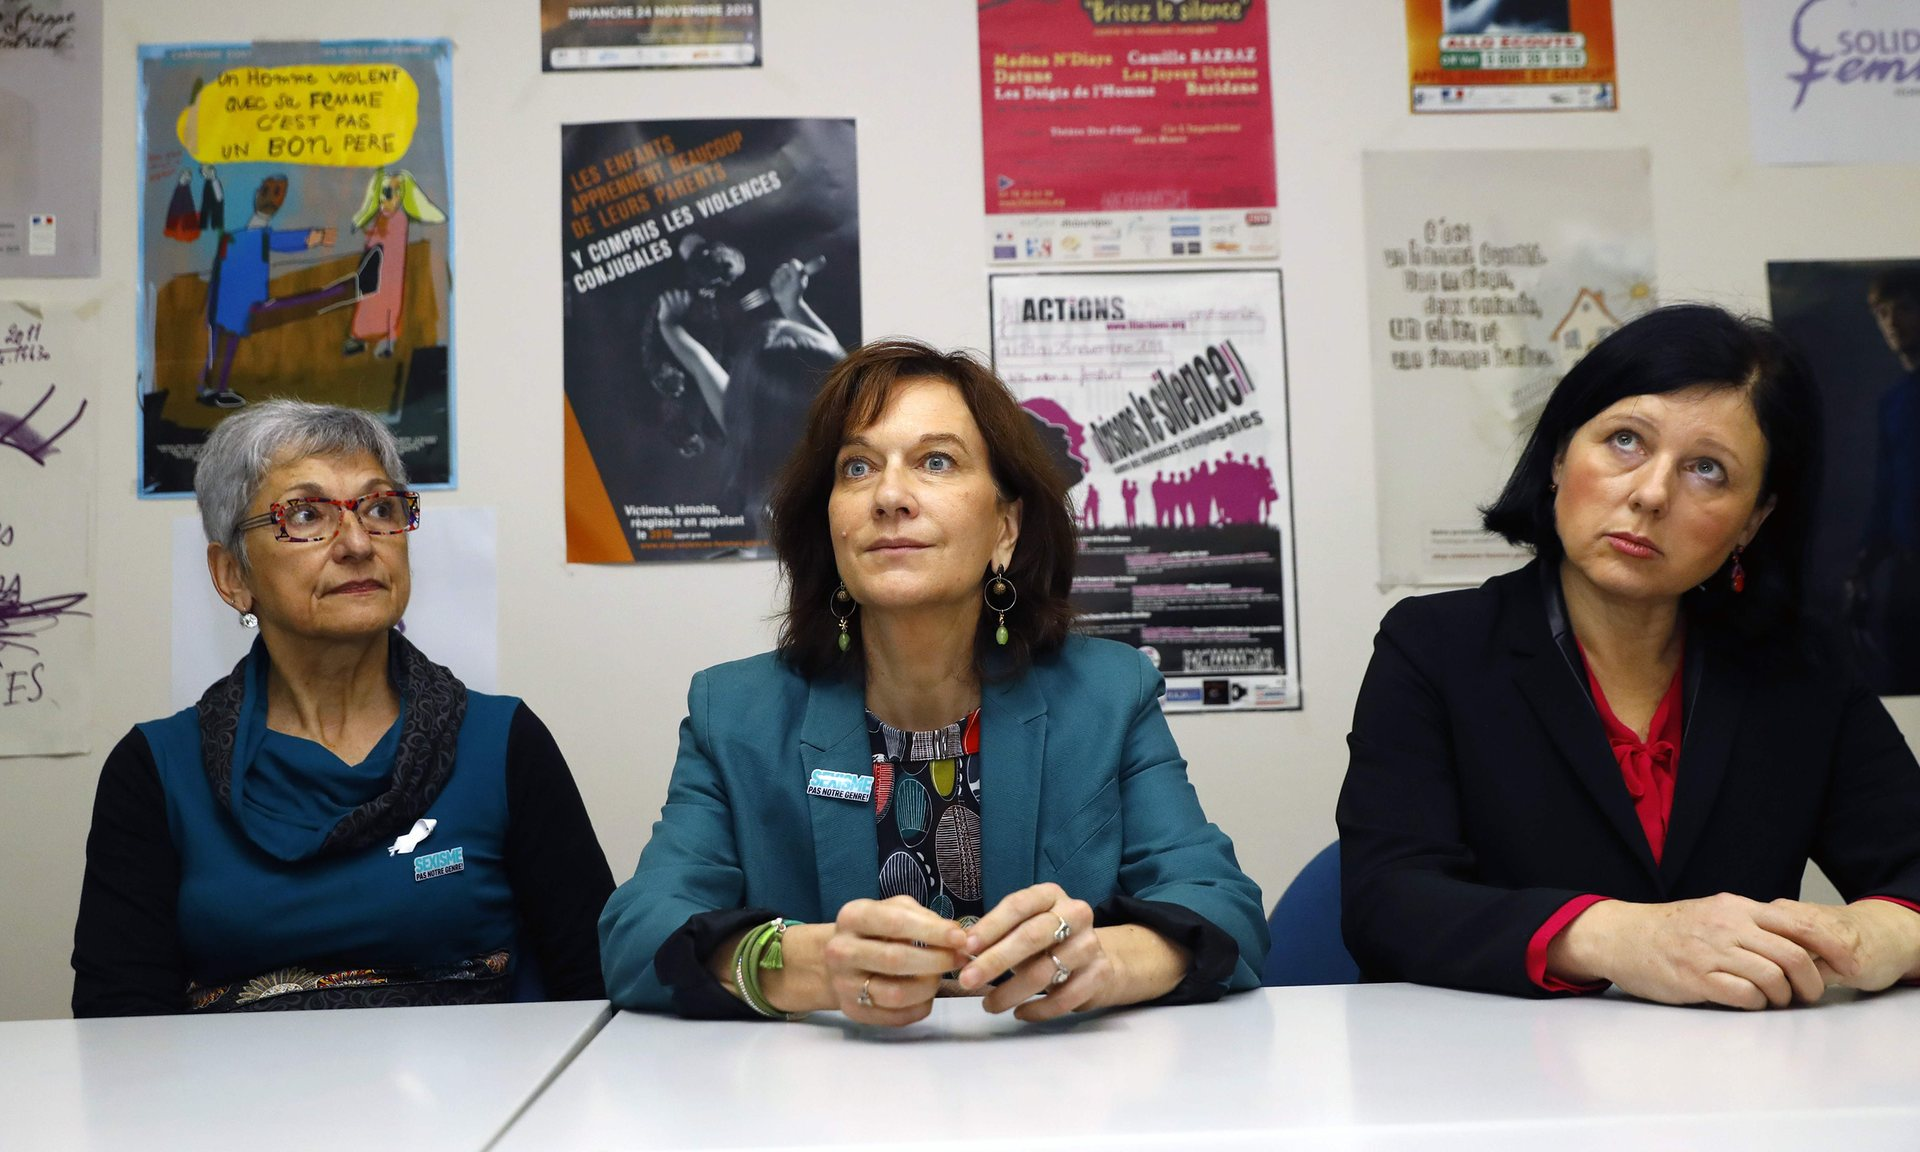 French women's minister, Laurence Rossignol, has spoken out about fake abortion information sites. Photograph: Patrick Kovarik/AFP/Getty Images